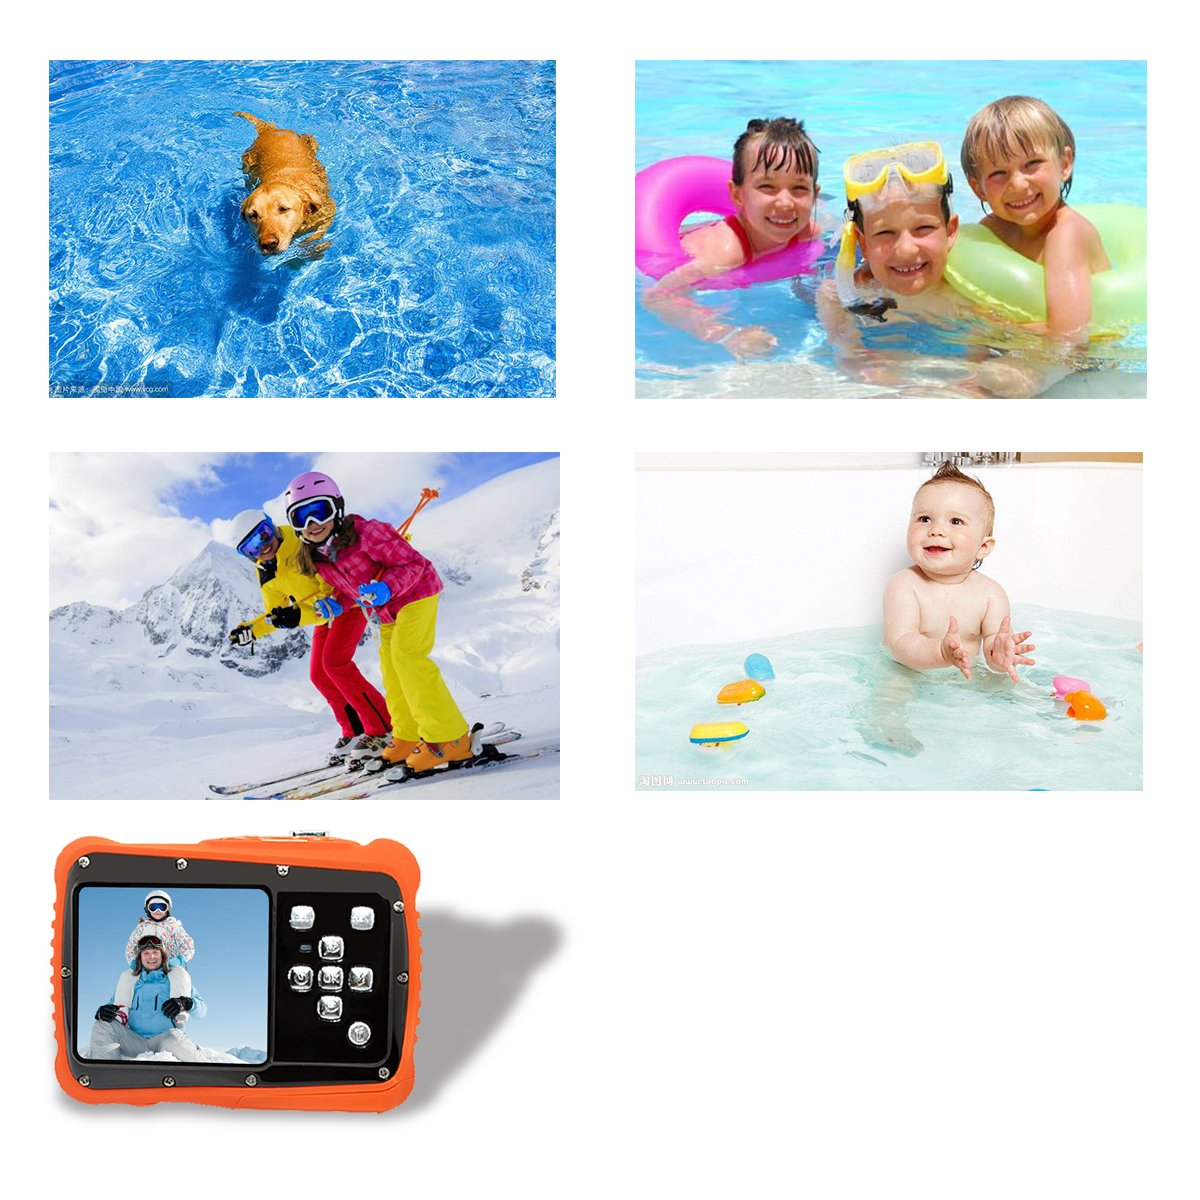 Underwater Action Digital Camera Camcorder for Kids, waterproof 3M/9.8ft, 5 MP CMOS 12MP 1080p, Orange by Oikkei (Image #4)